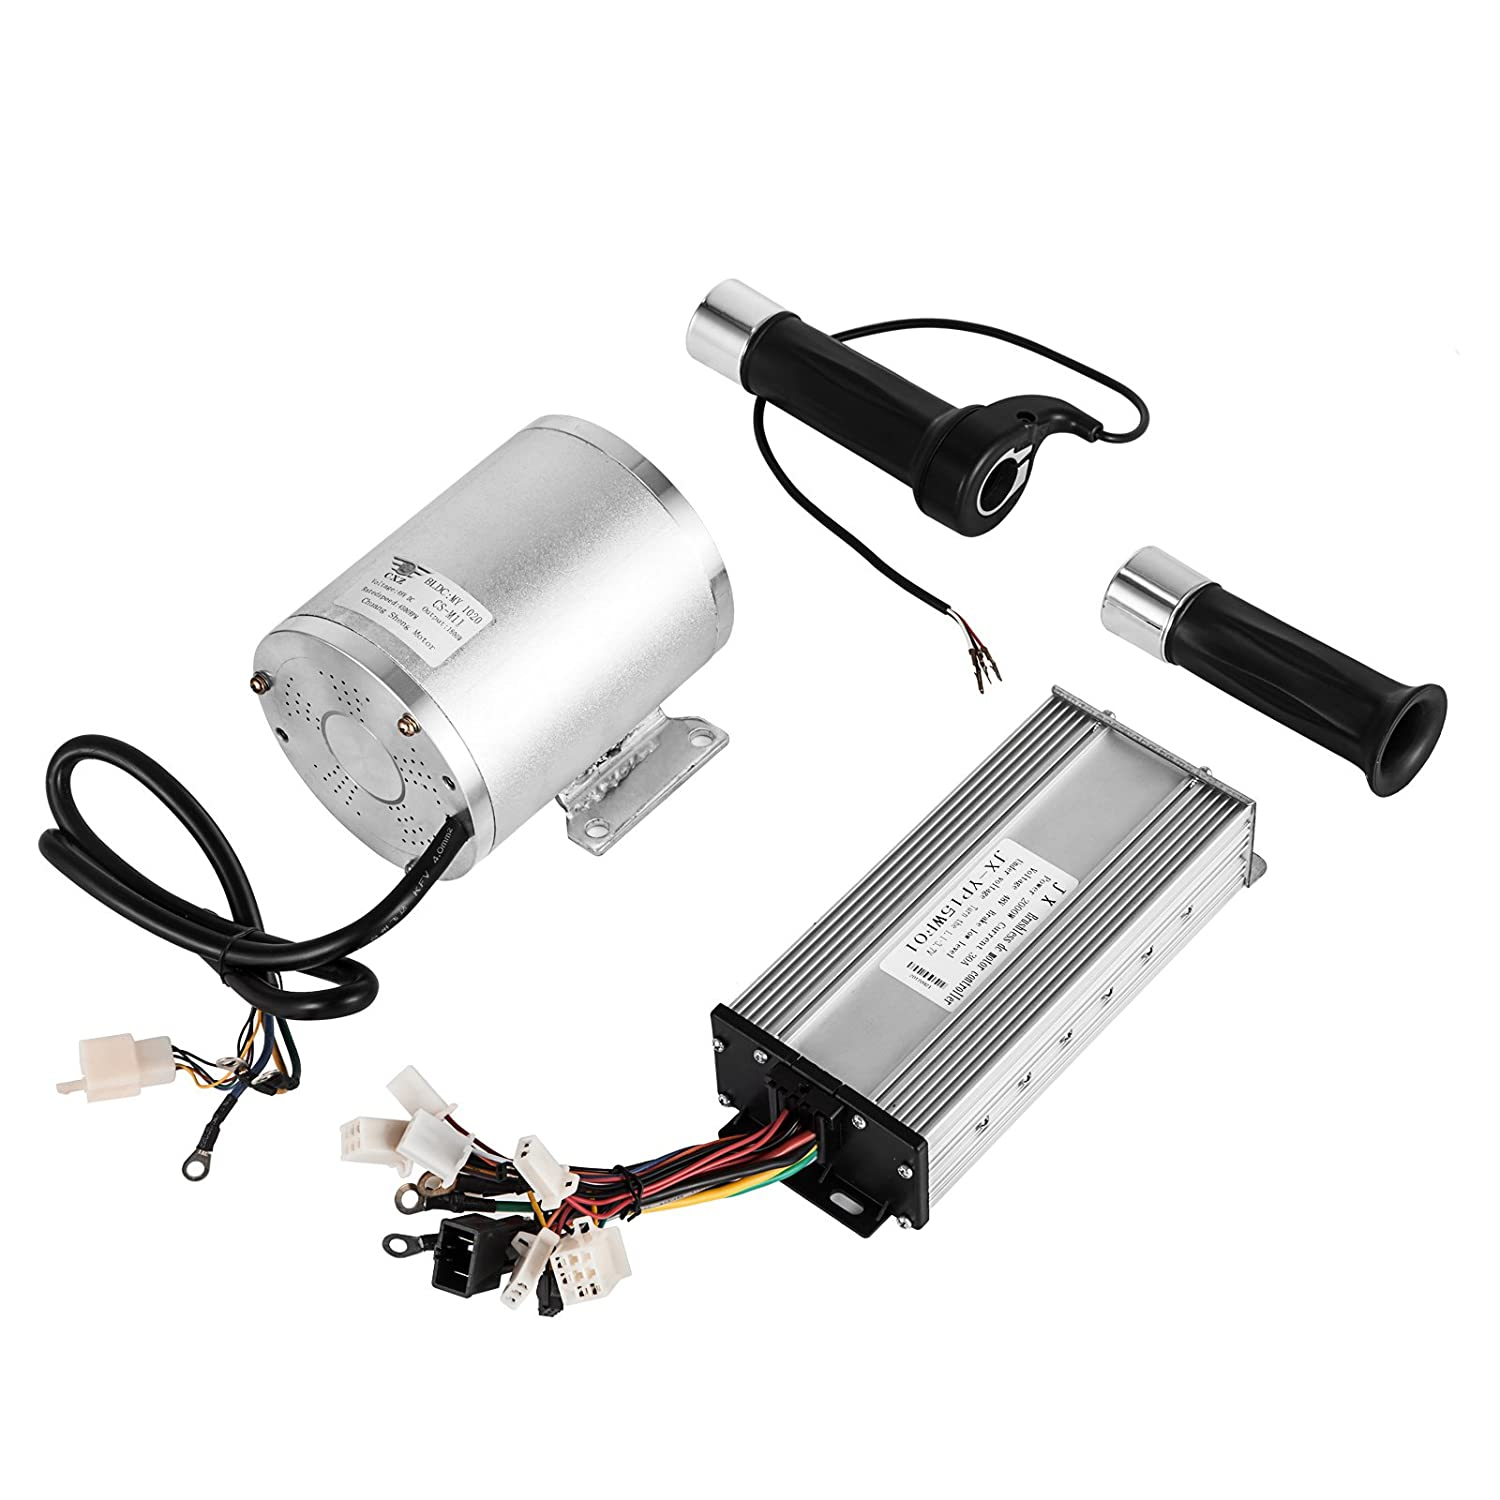 Mophorn 1800w Electric Brushless Dc Motor Kit 48v High Wiring Diagram For Motorized Bicycle Speed With 32a Controller And Throttle Grip Go Karts E Bike